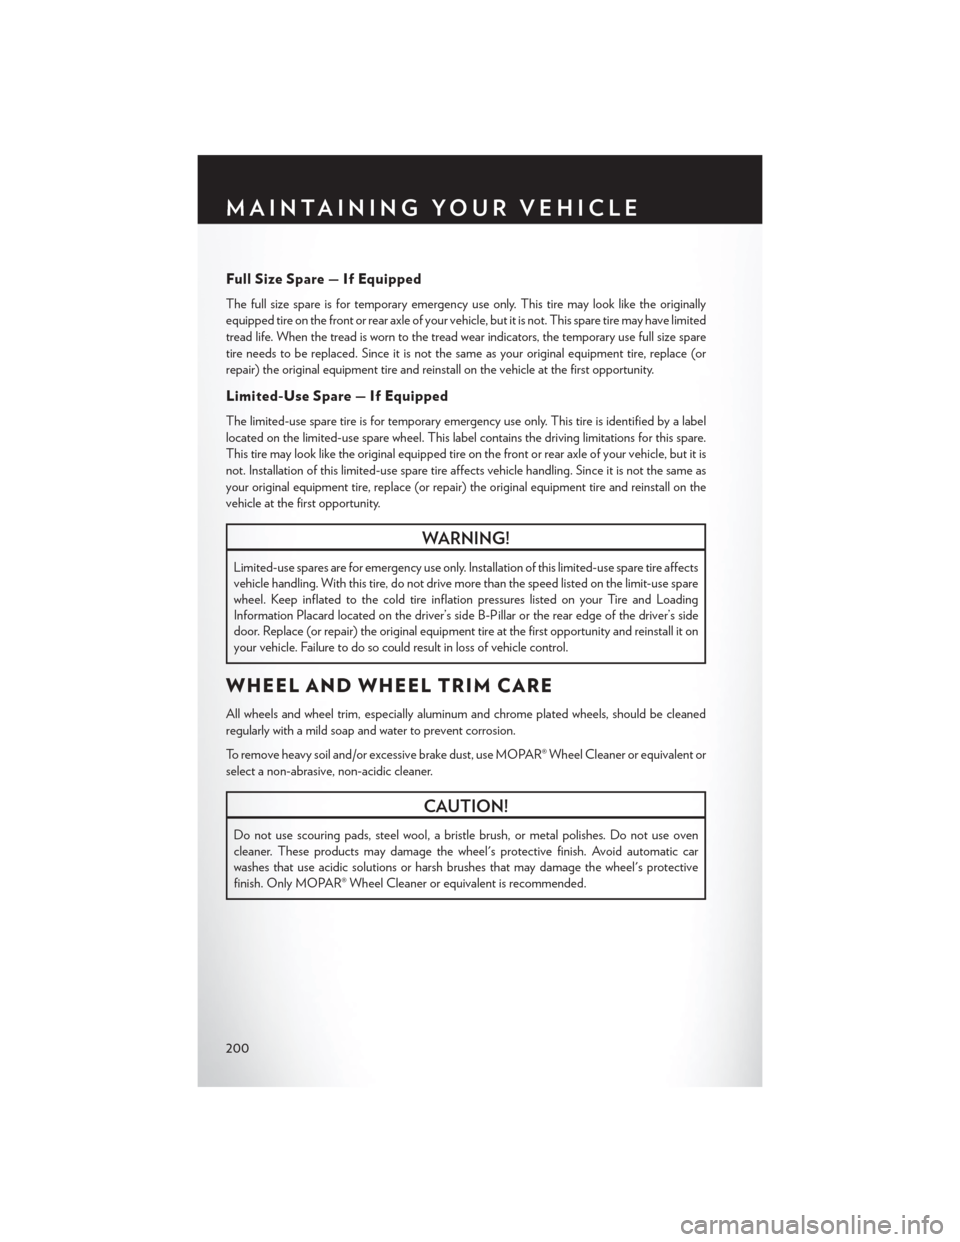 CHRYSLER 200 2015 2.G User Guide Full Size Spare — If Equipped The full size spare is for temporary emergency use only. This tire may look like the originally equipped tire on the front or rear axle of your vehicle, but it is not.